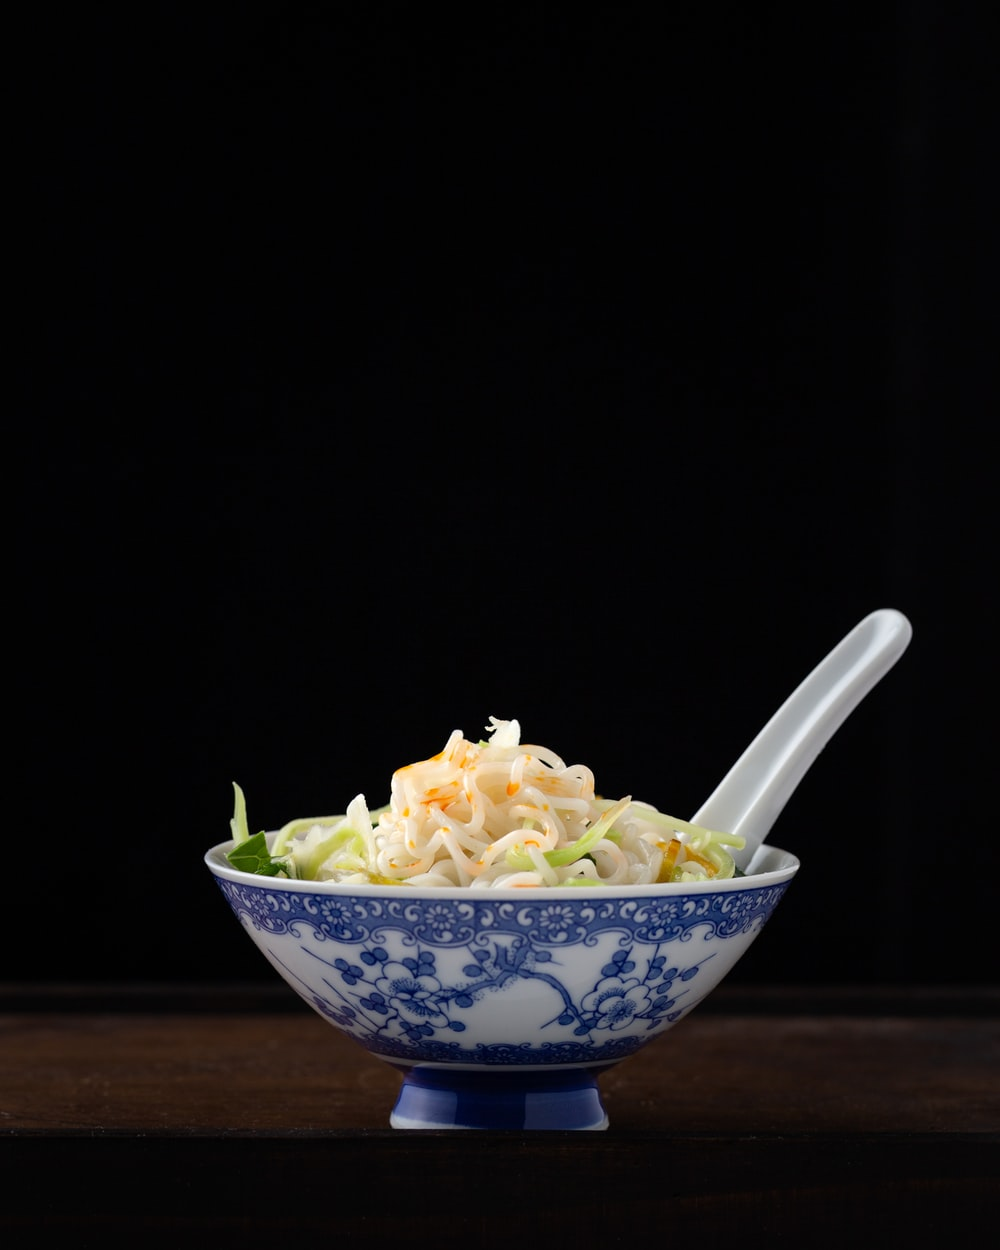 noodles in white and blur floral bowl